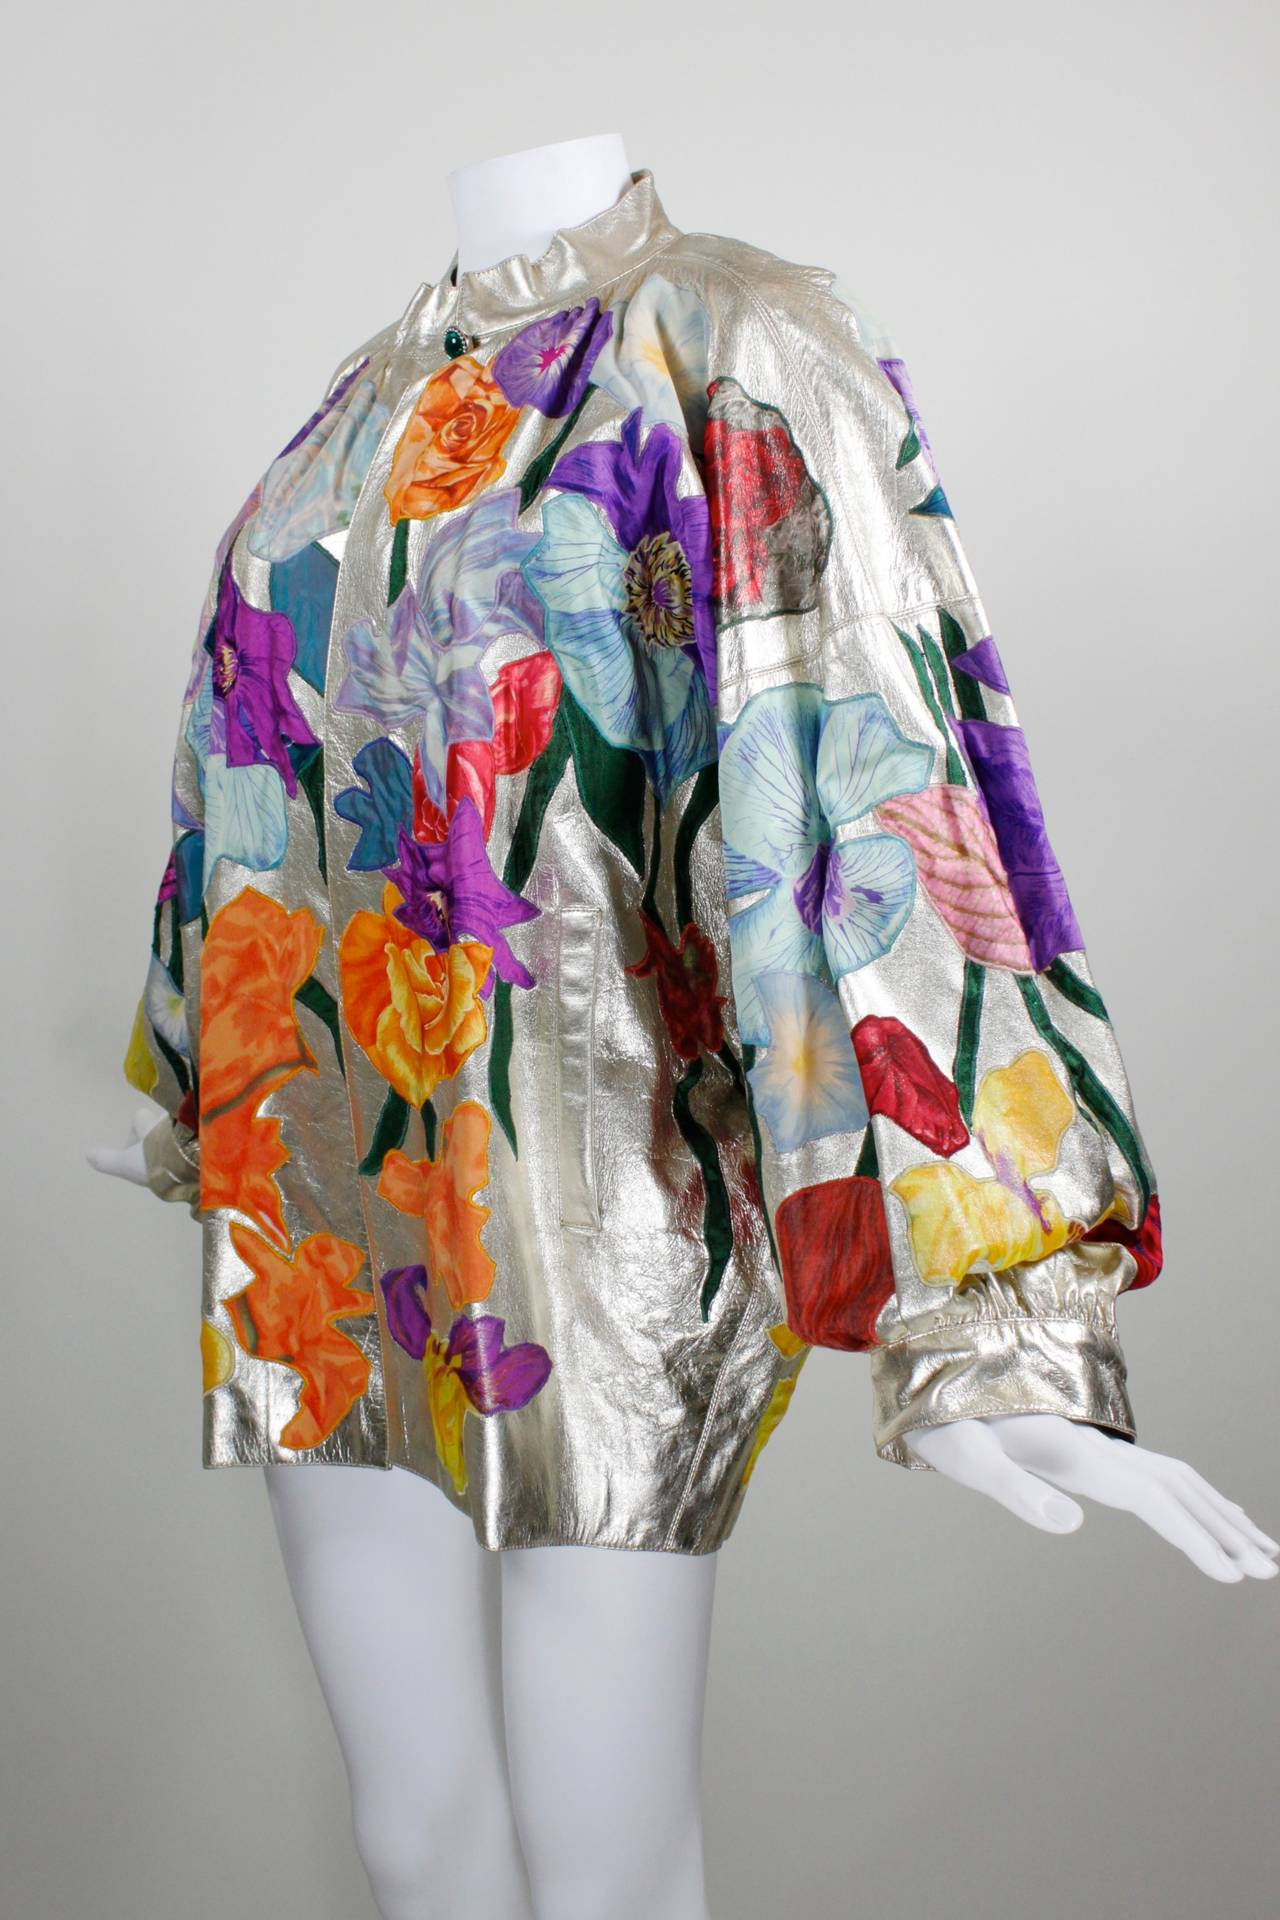 YSL Couture Silver Leather with Rainbow Floral Appliqué Jacket 5